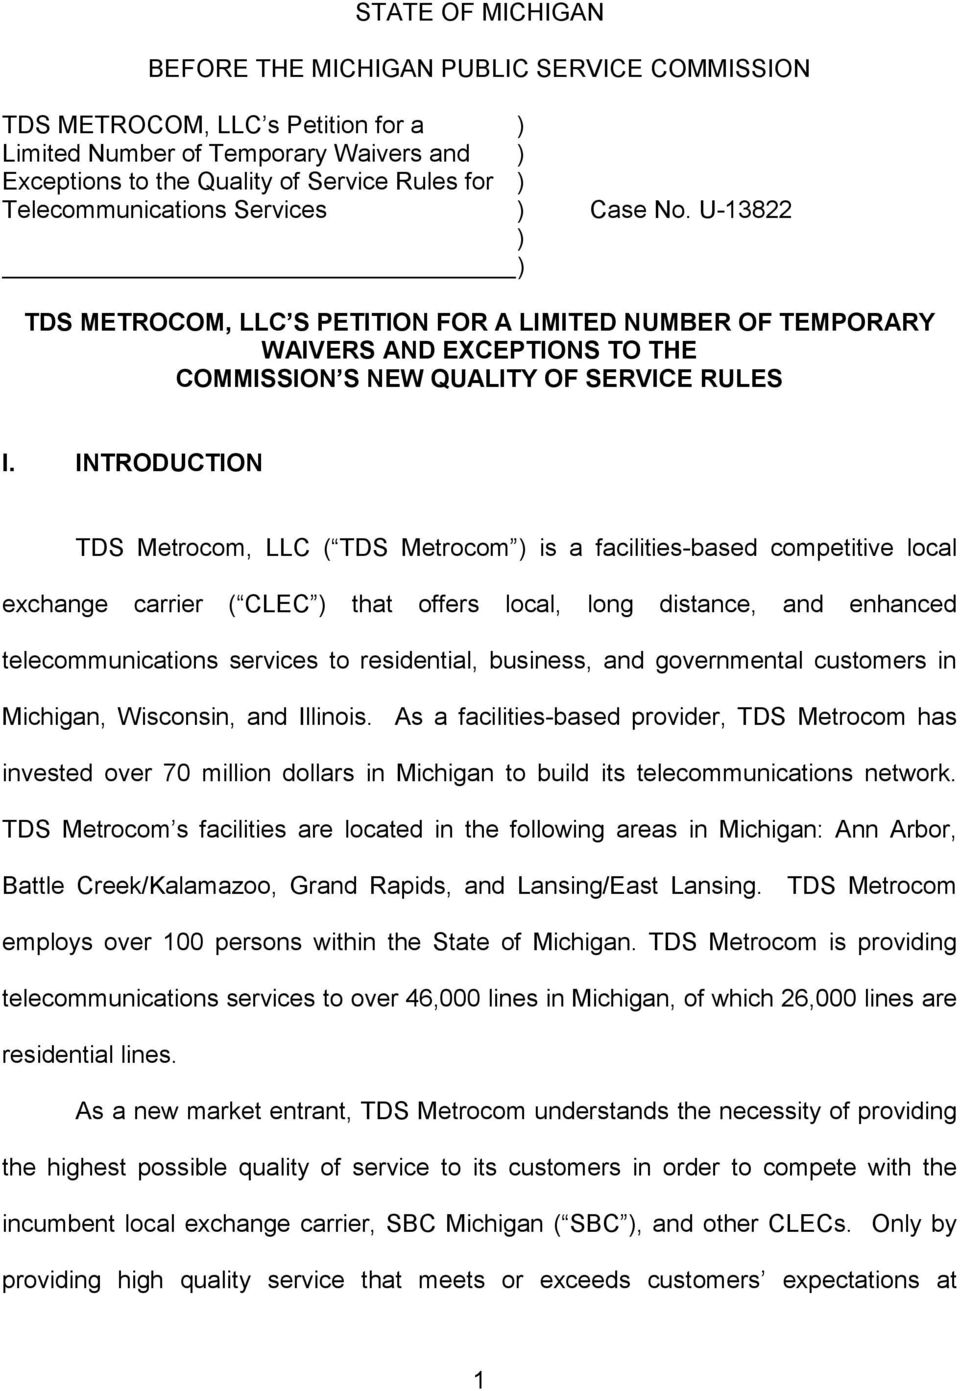 INTRODUCTION TDS Metrocom, LLC ( TDS Metrocom ) is a facilities-based competitive local exchange carrier ( CLEC ) that offers local, long distance, and enhanced telecommunications services to